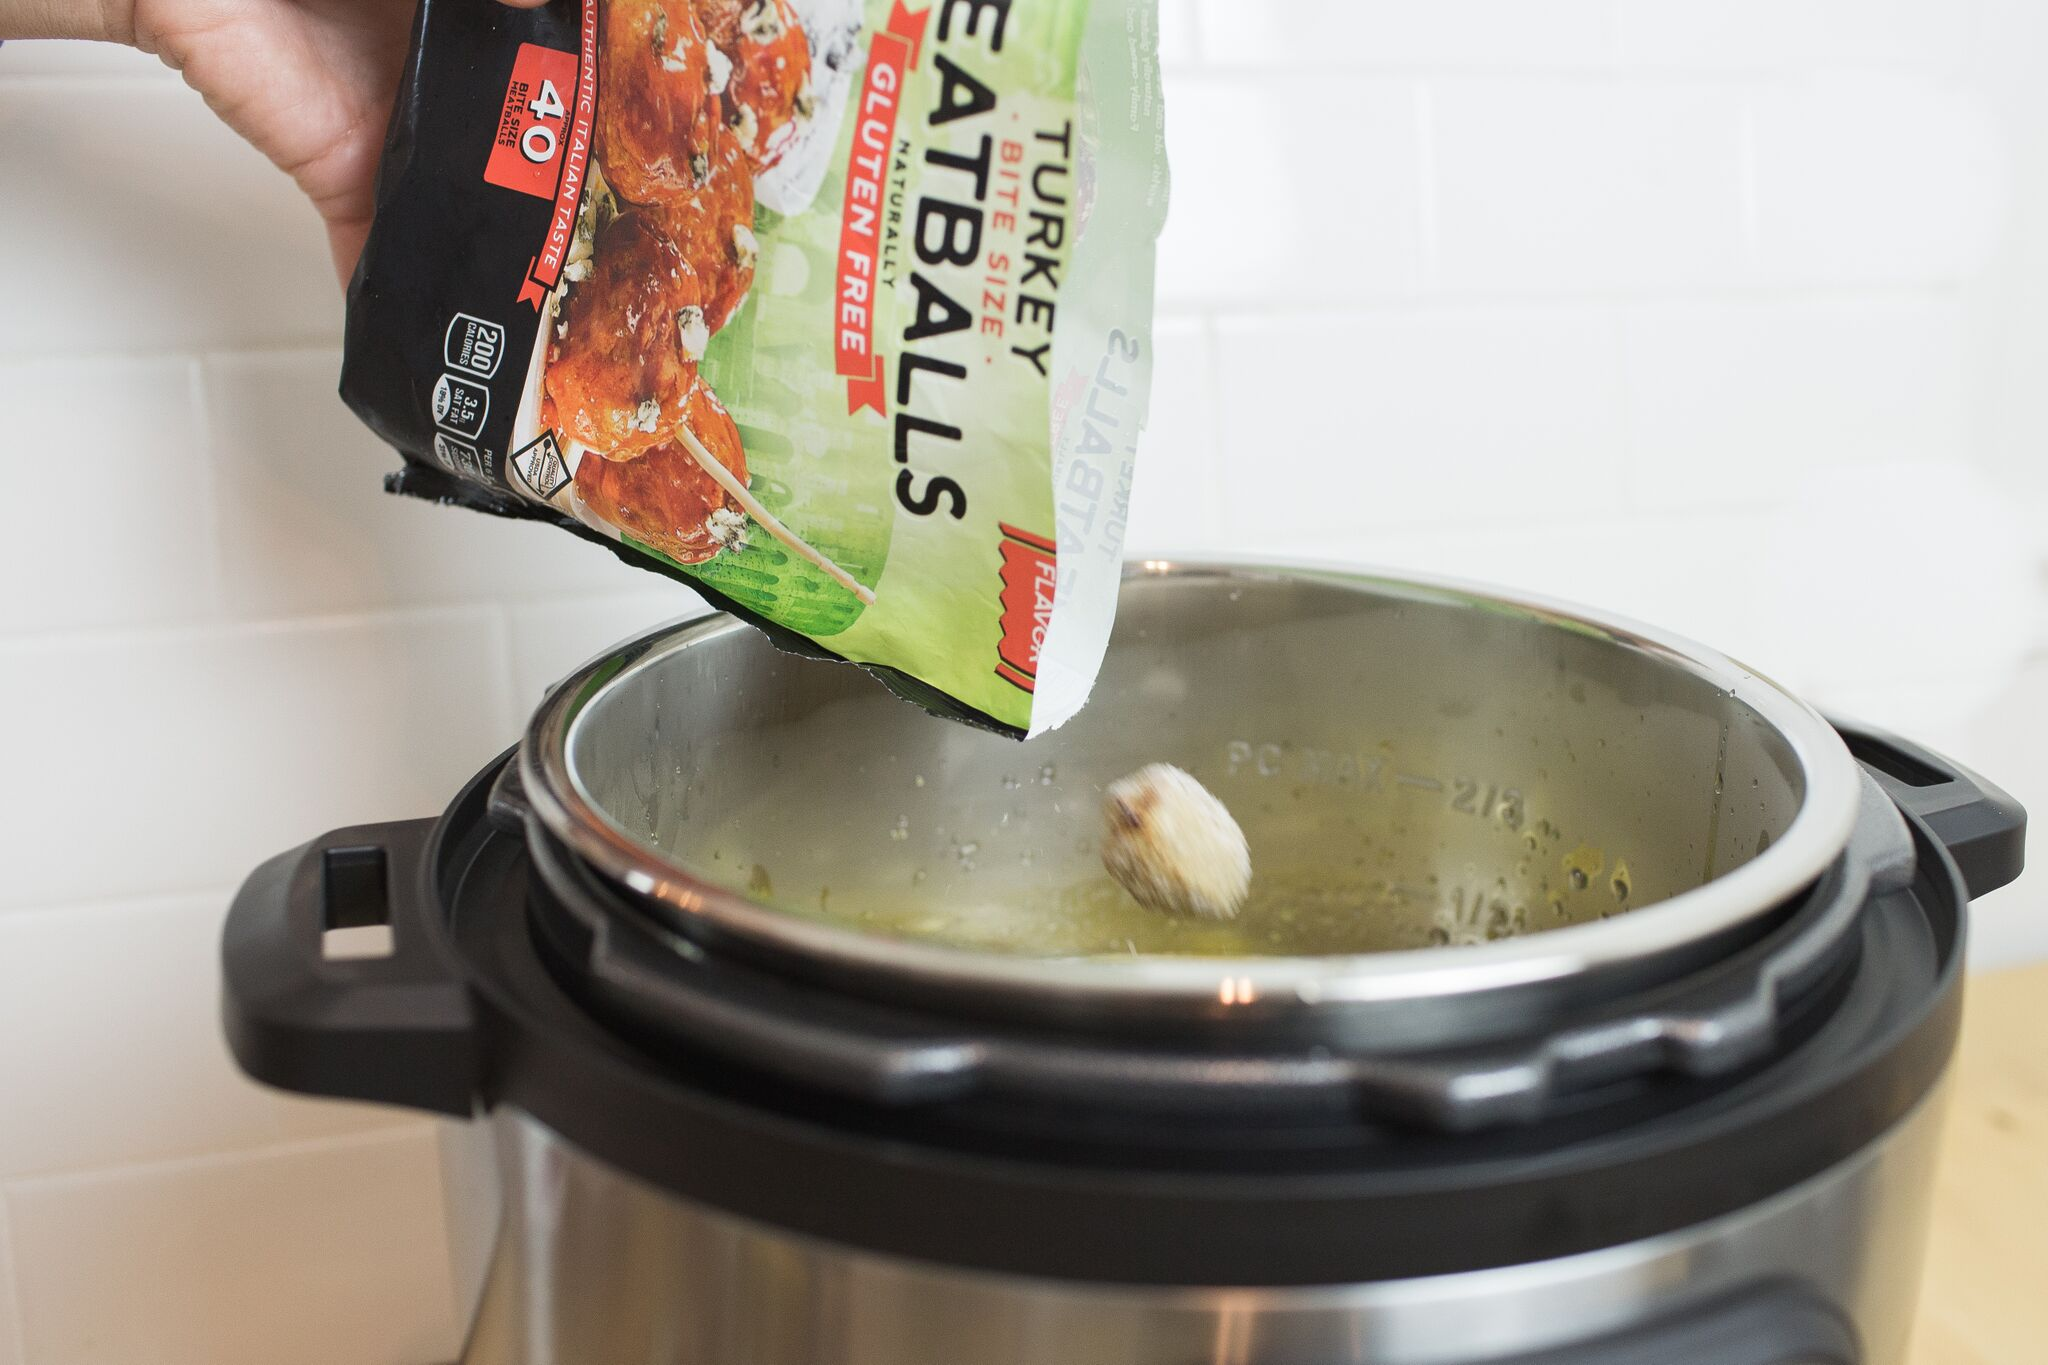 Place frozen meatballs into the Instant Pot with other ingredients.